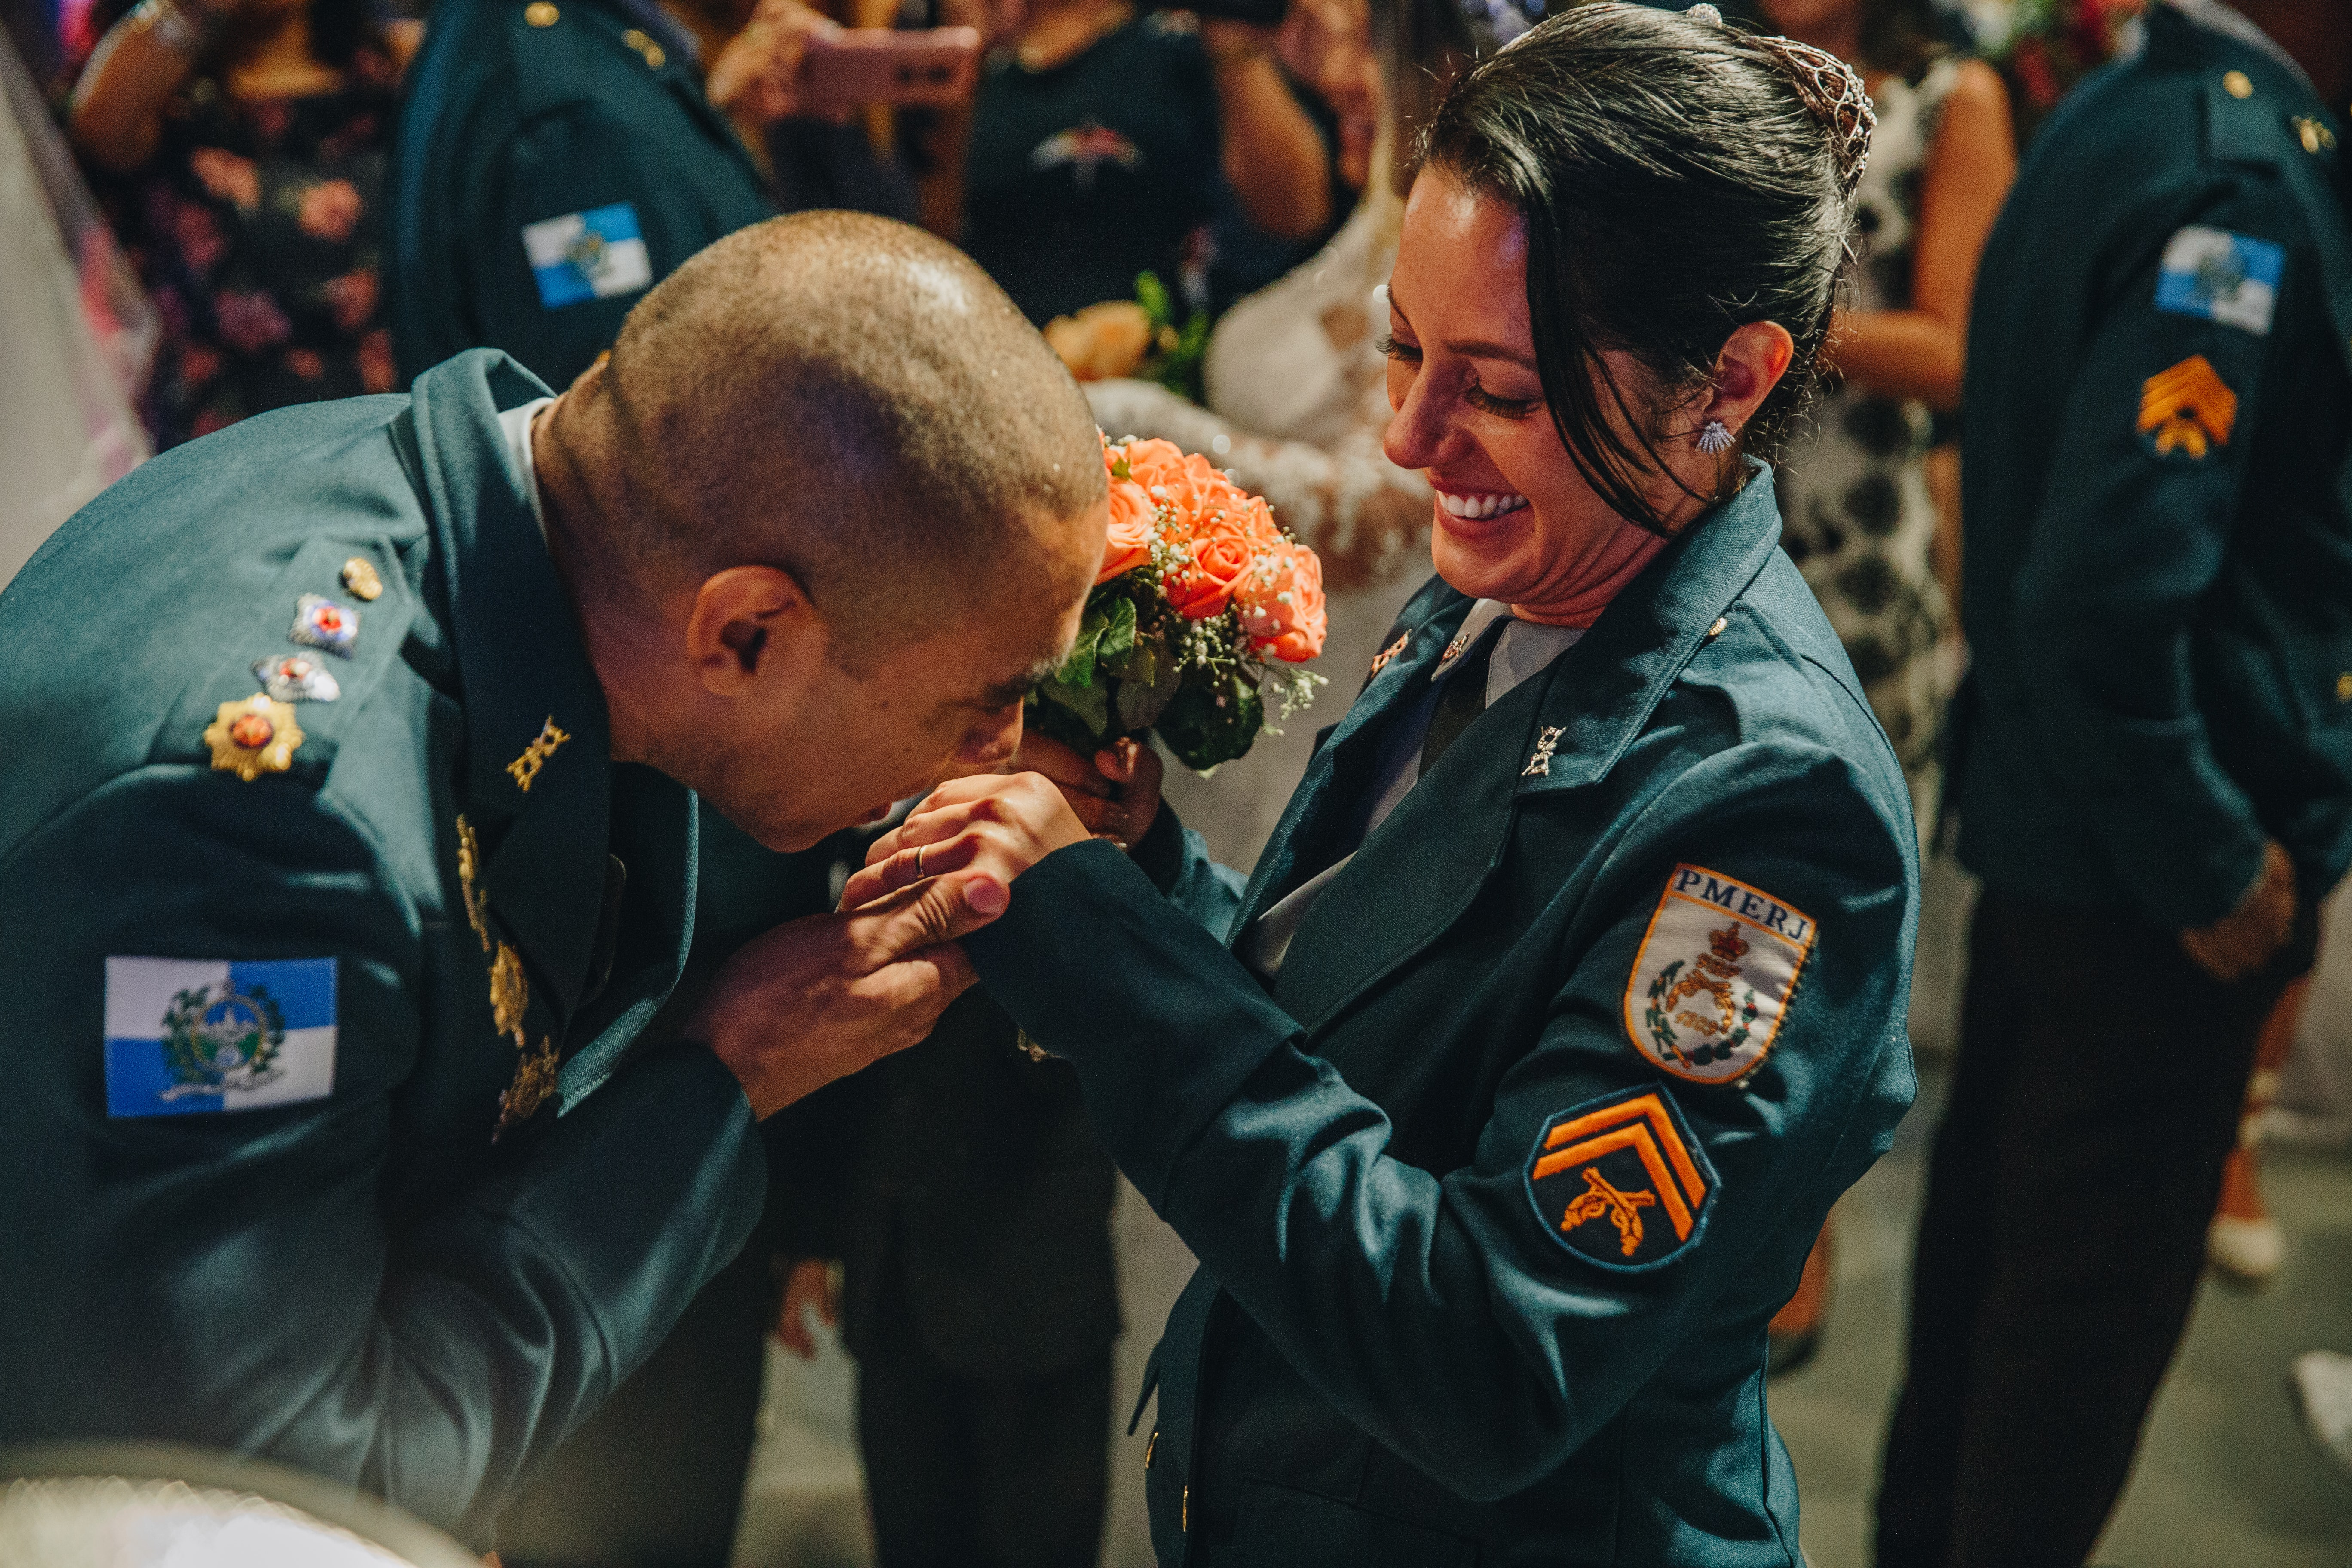 man giving flower bouquet to a woman